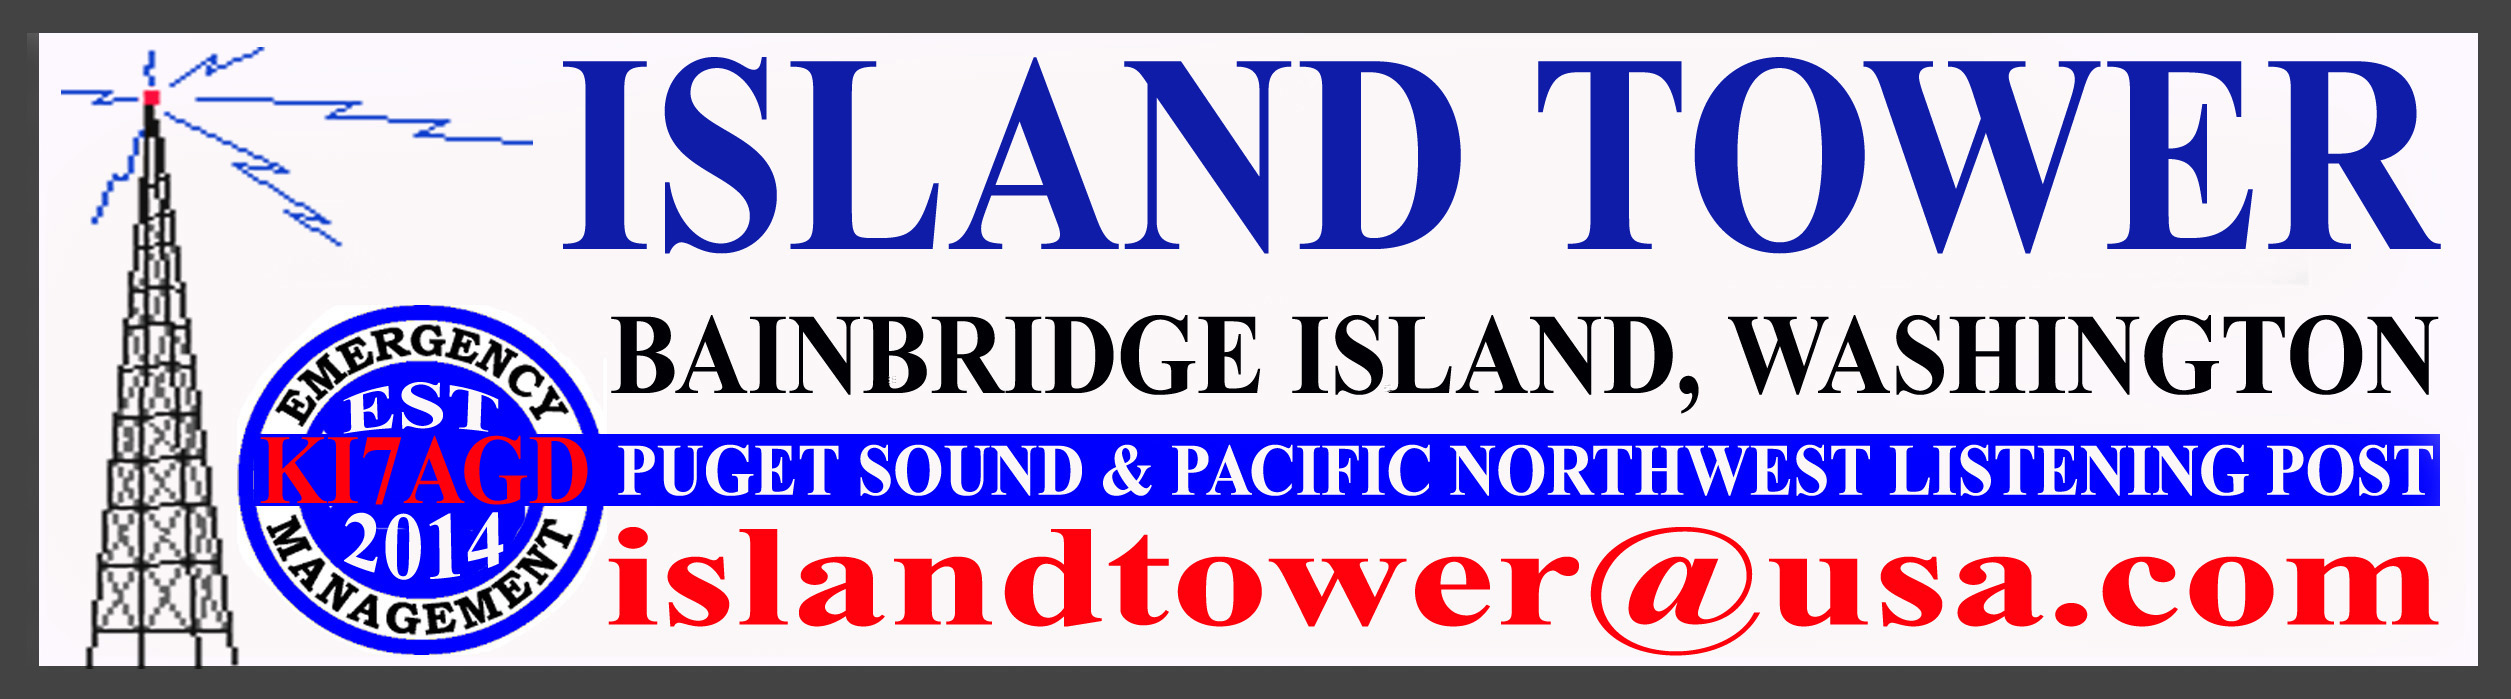 Island Tower Emergency Radio Communications Services/Puget